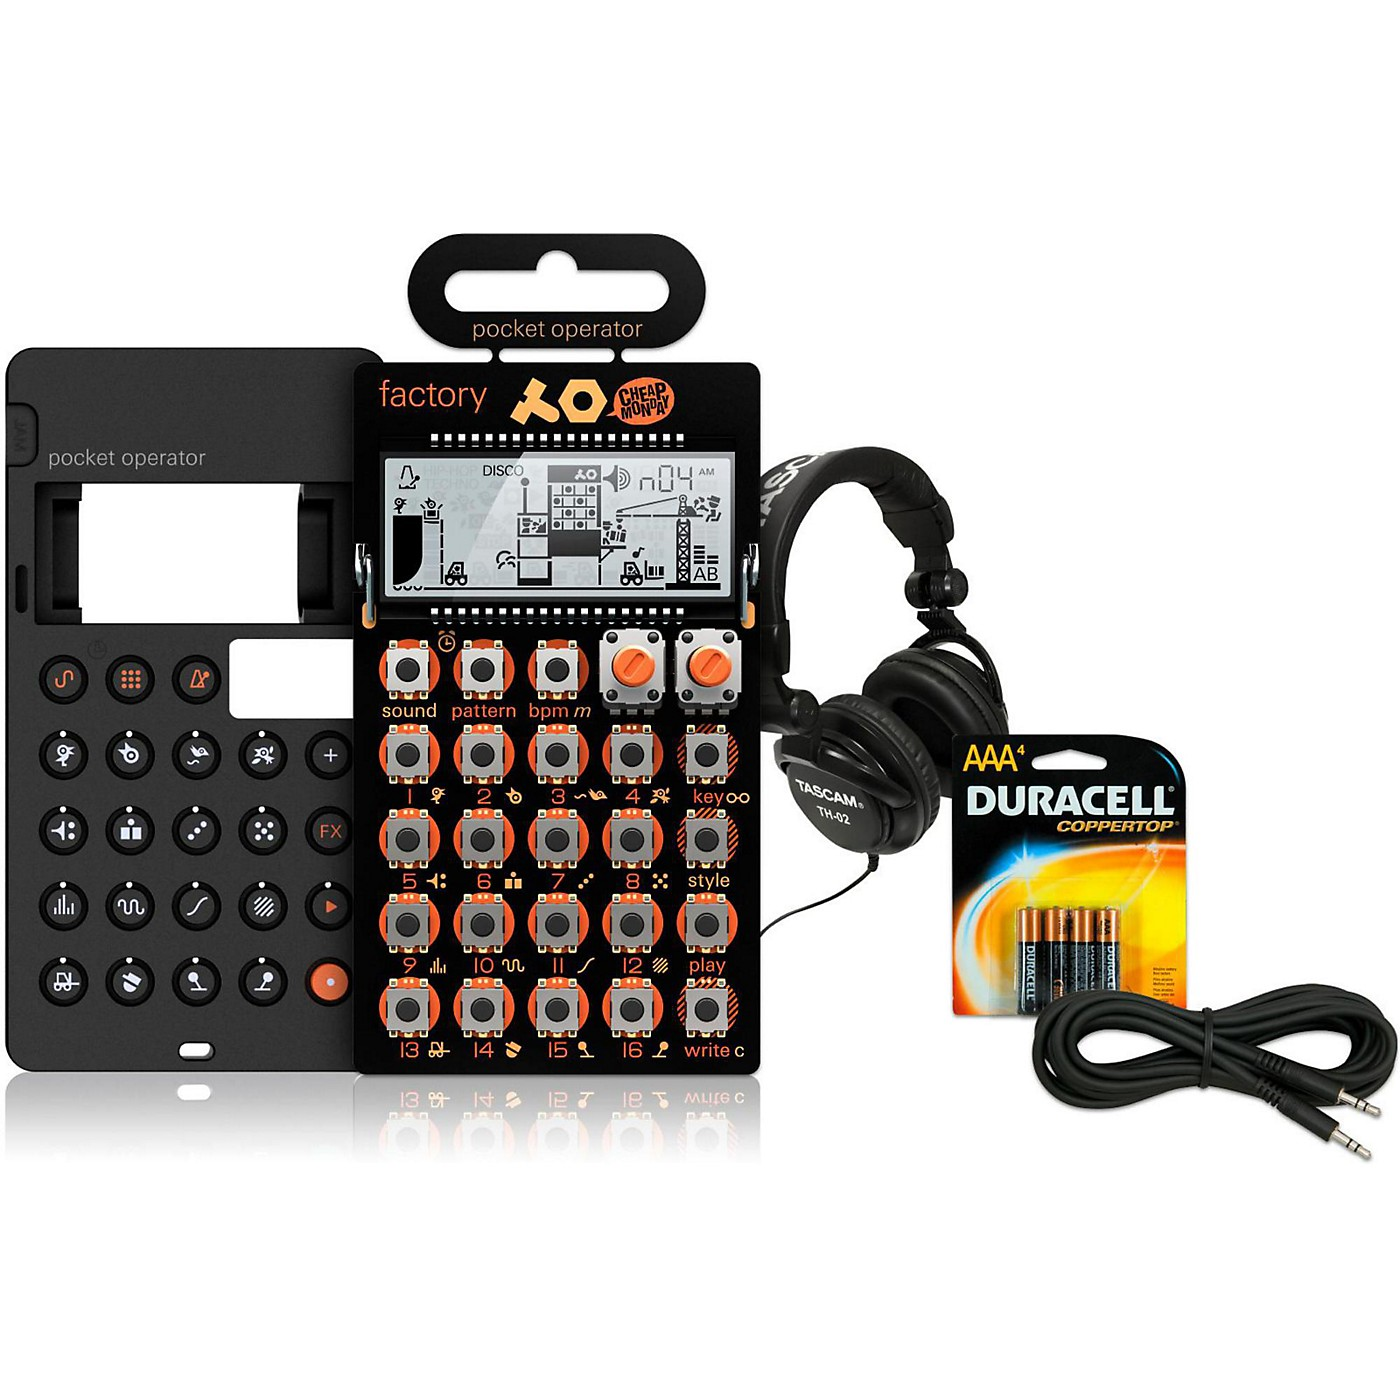 Teenage Engineering Factory Pocket Operator with Case, Batteries, Headphones and Cable thumbnail